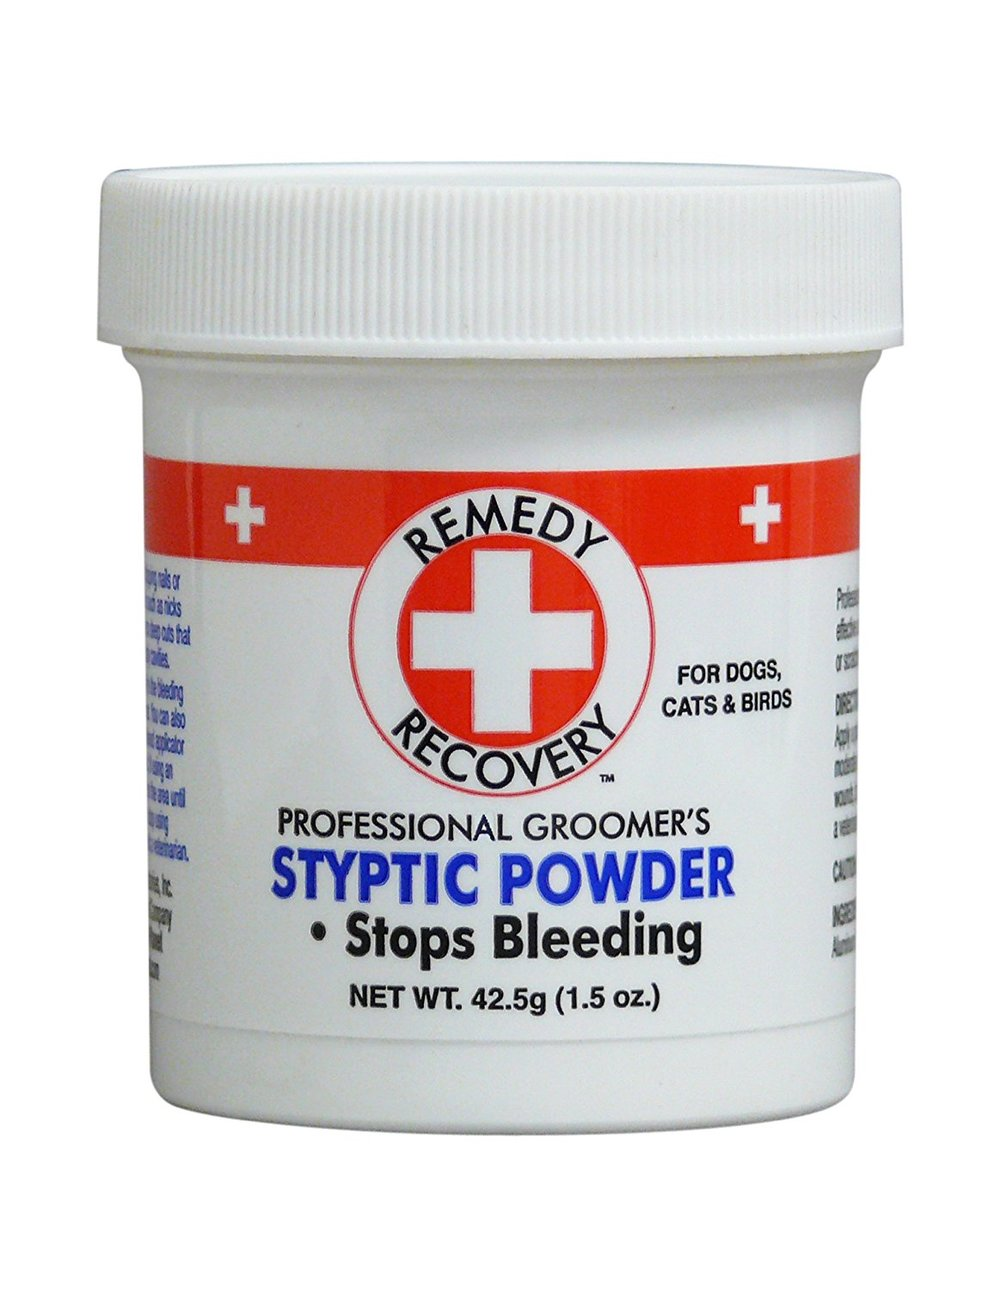 Styptic Powder - This is something you should have on hand if you are going to trim nails at home....and something that is really handy anyway :) In the case that you trim nails too short (which happens.....even at the groomers!) this will stop the bleeding.https://amzn.to/2KcymPB